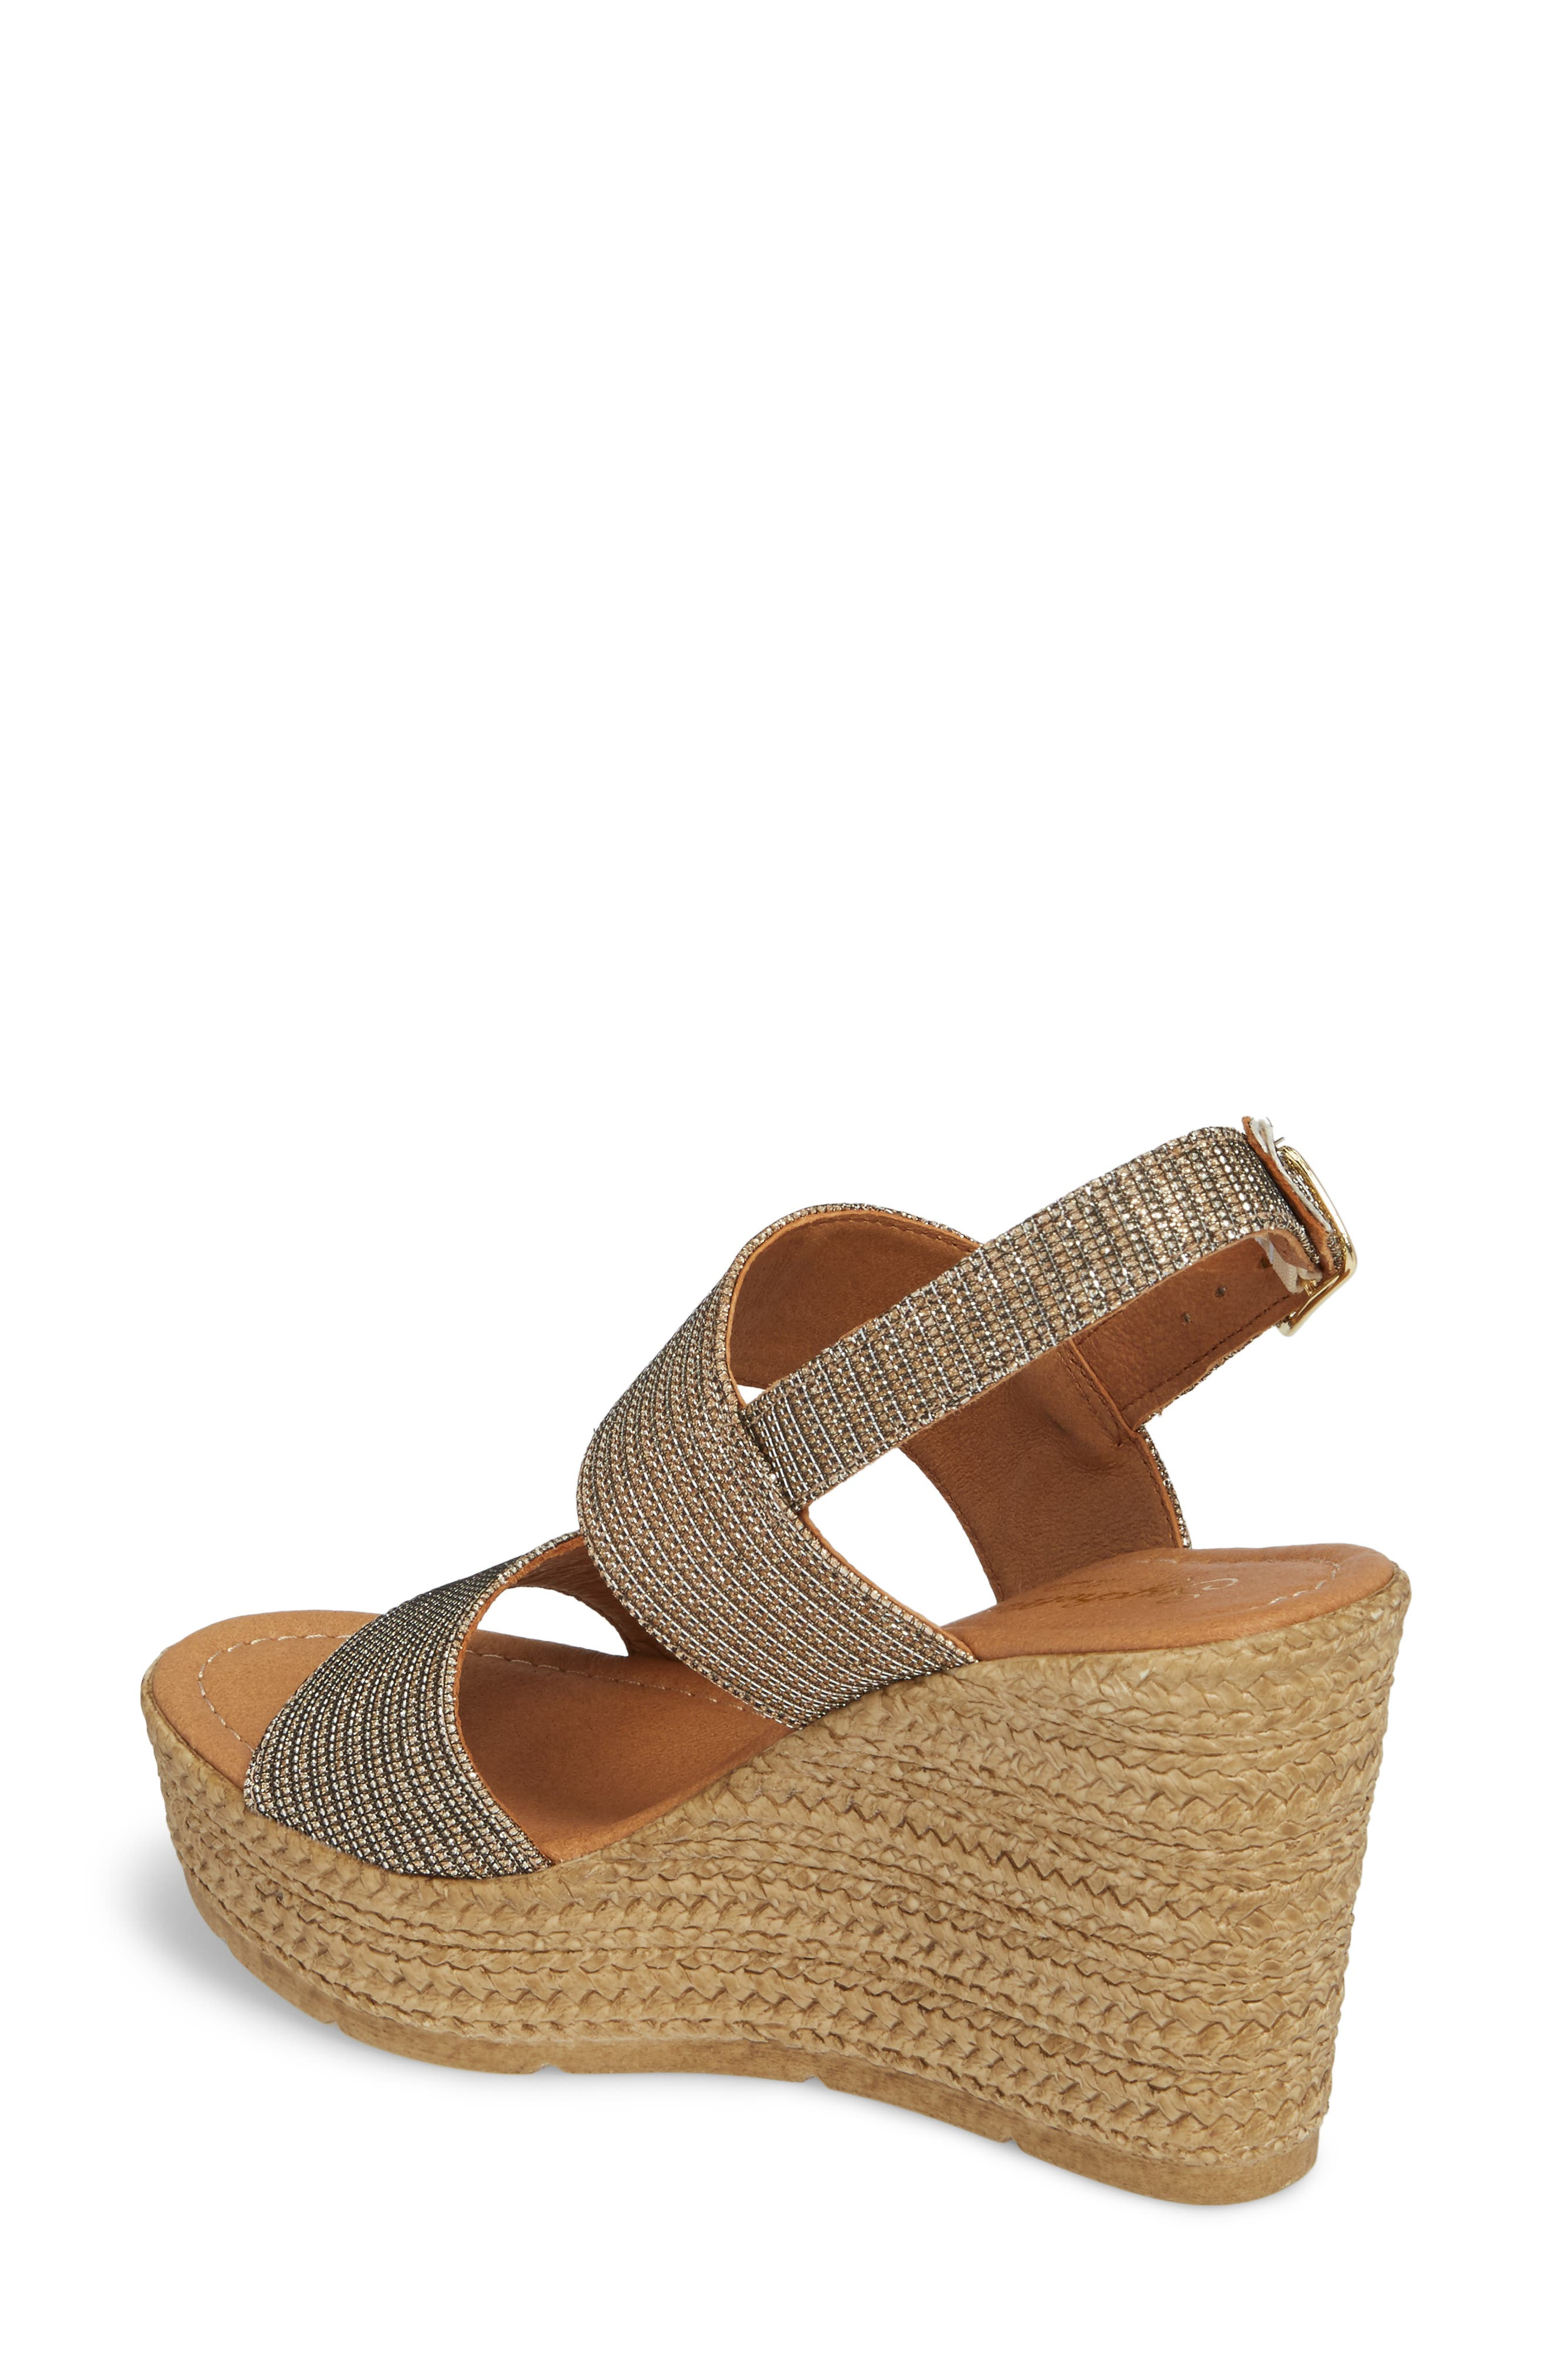 Downtime Wedge Sandal,                             Alternate thumbnail 2, color,                             220